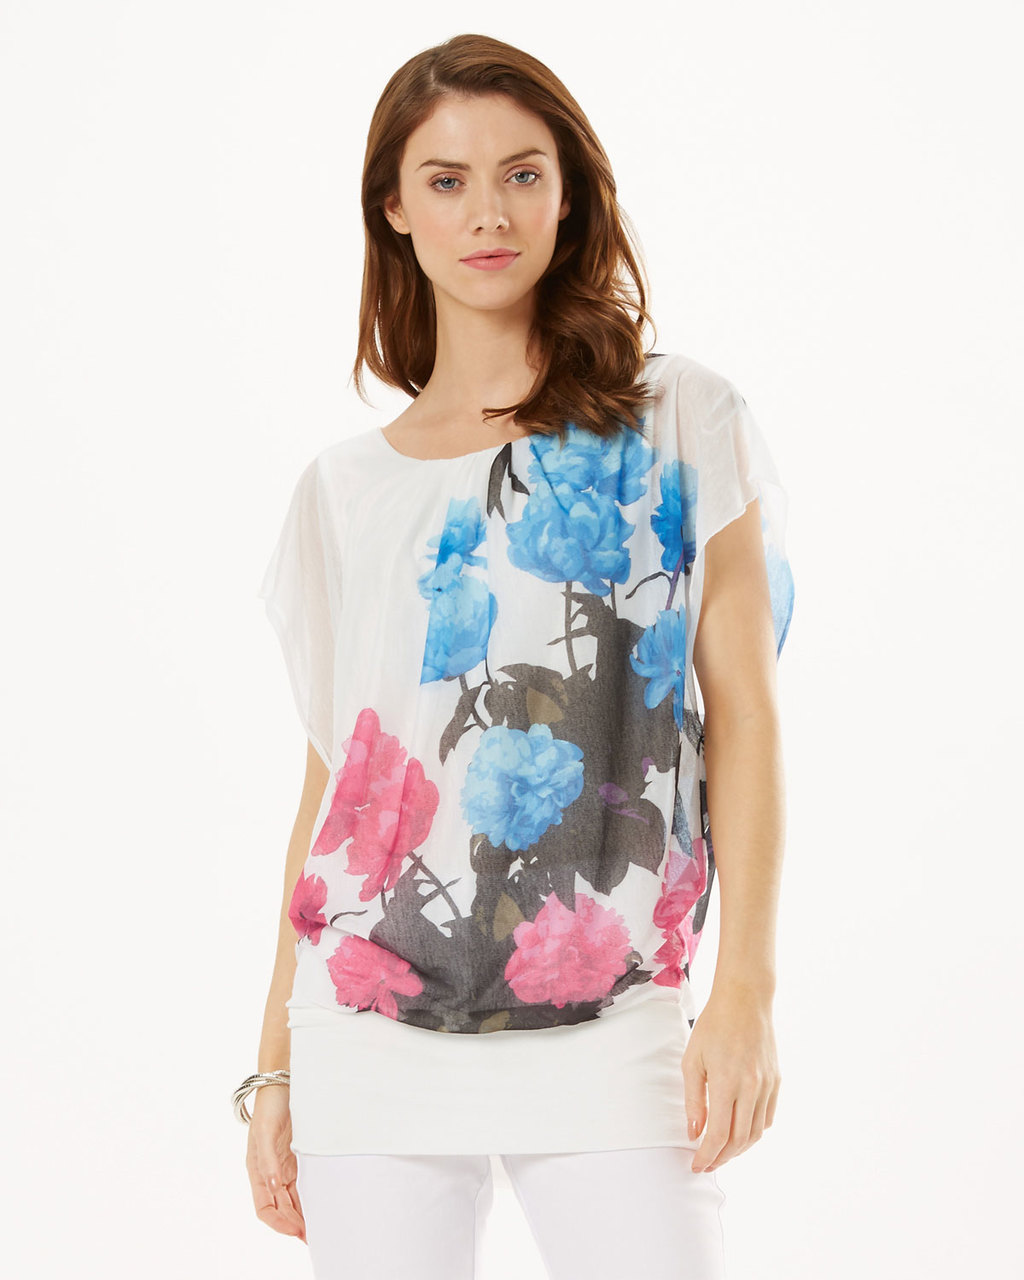 Mina Floral Top - neckline: round neck; length: below the bottom; predominant colour: ivory/cream; secondary colour: diva blue; occasions: casual; style: top; fibres: polyester/polyamide - 100%; fit: body skimming; sleeve length: short sleeve; sleeve style: standard; texture group: sheer fabrics/chiffon/organza etc.; pattern type: fabric; pattern: florals; multicoloured: multicoloured; season: s/s 2016; wardrobe: highlight